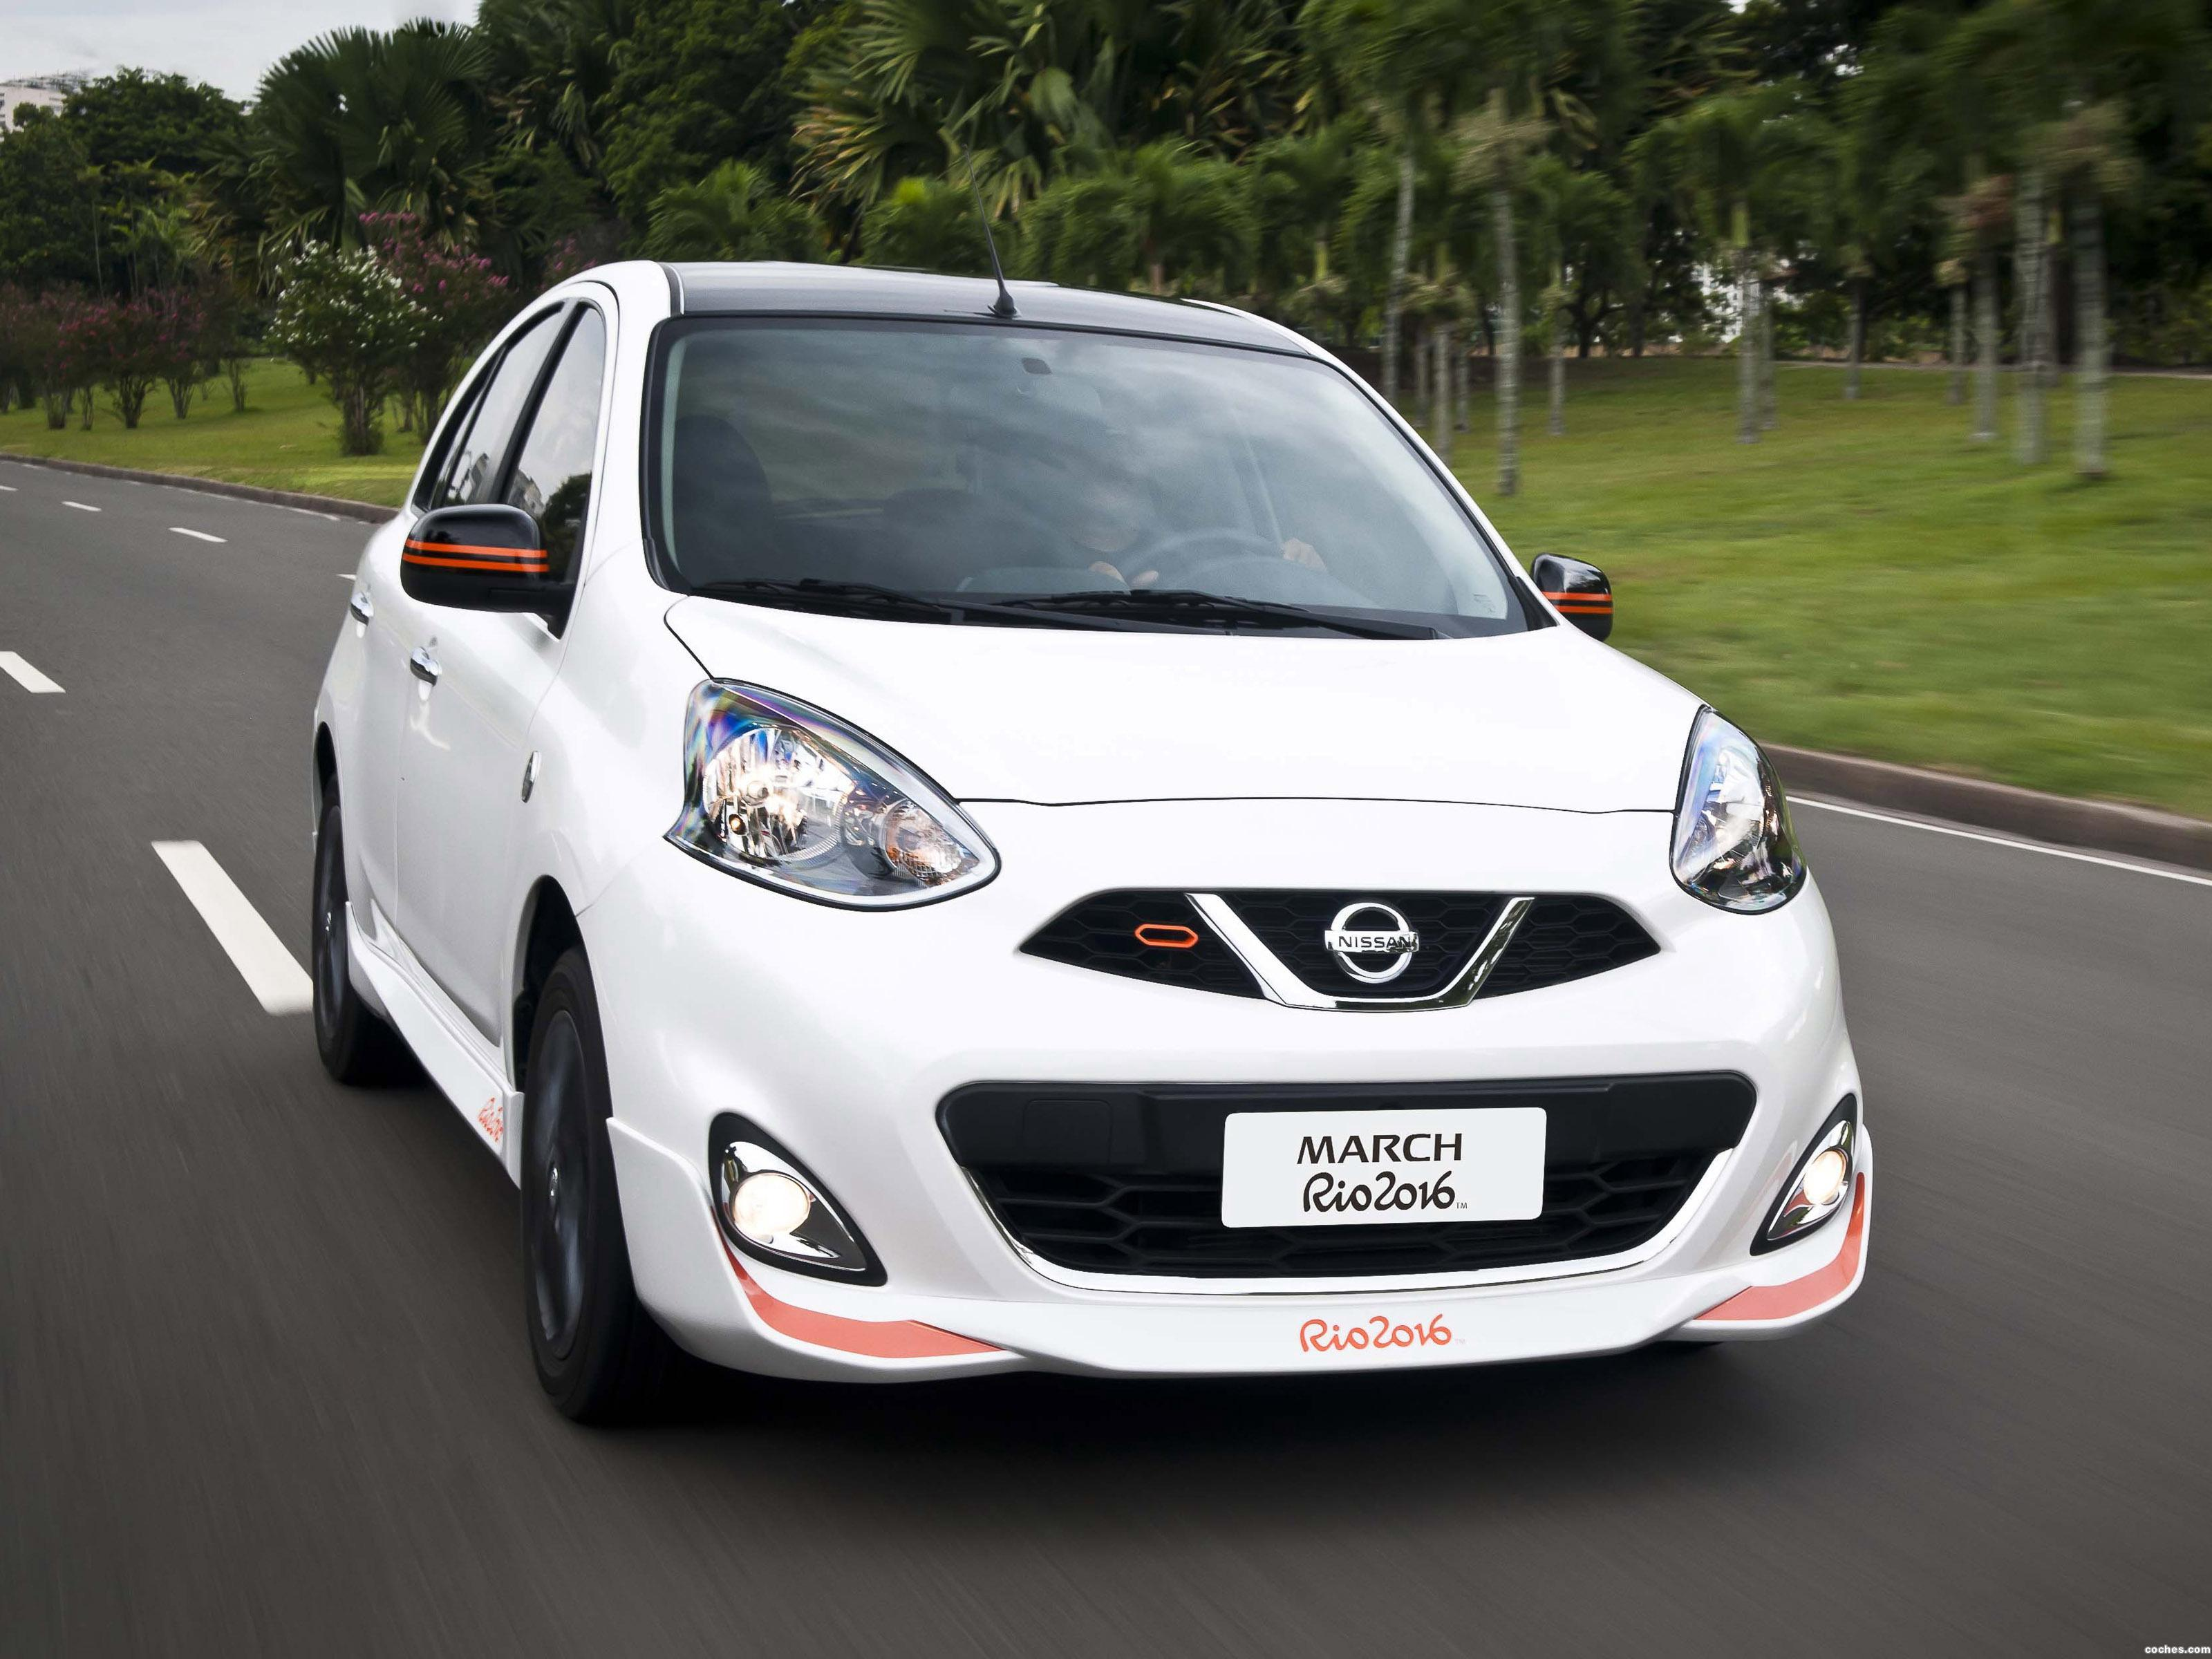 Foto 4 de Nissan March Rio 2016